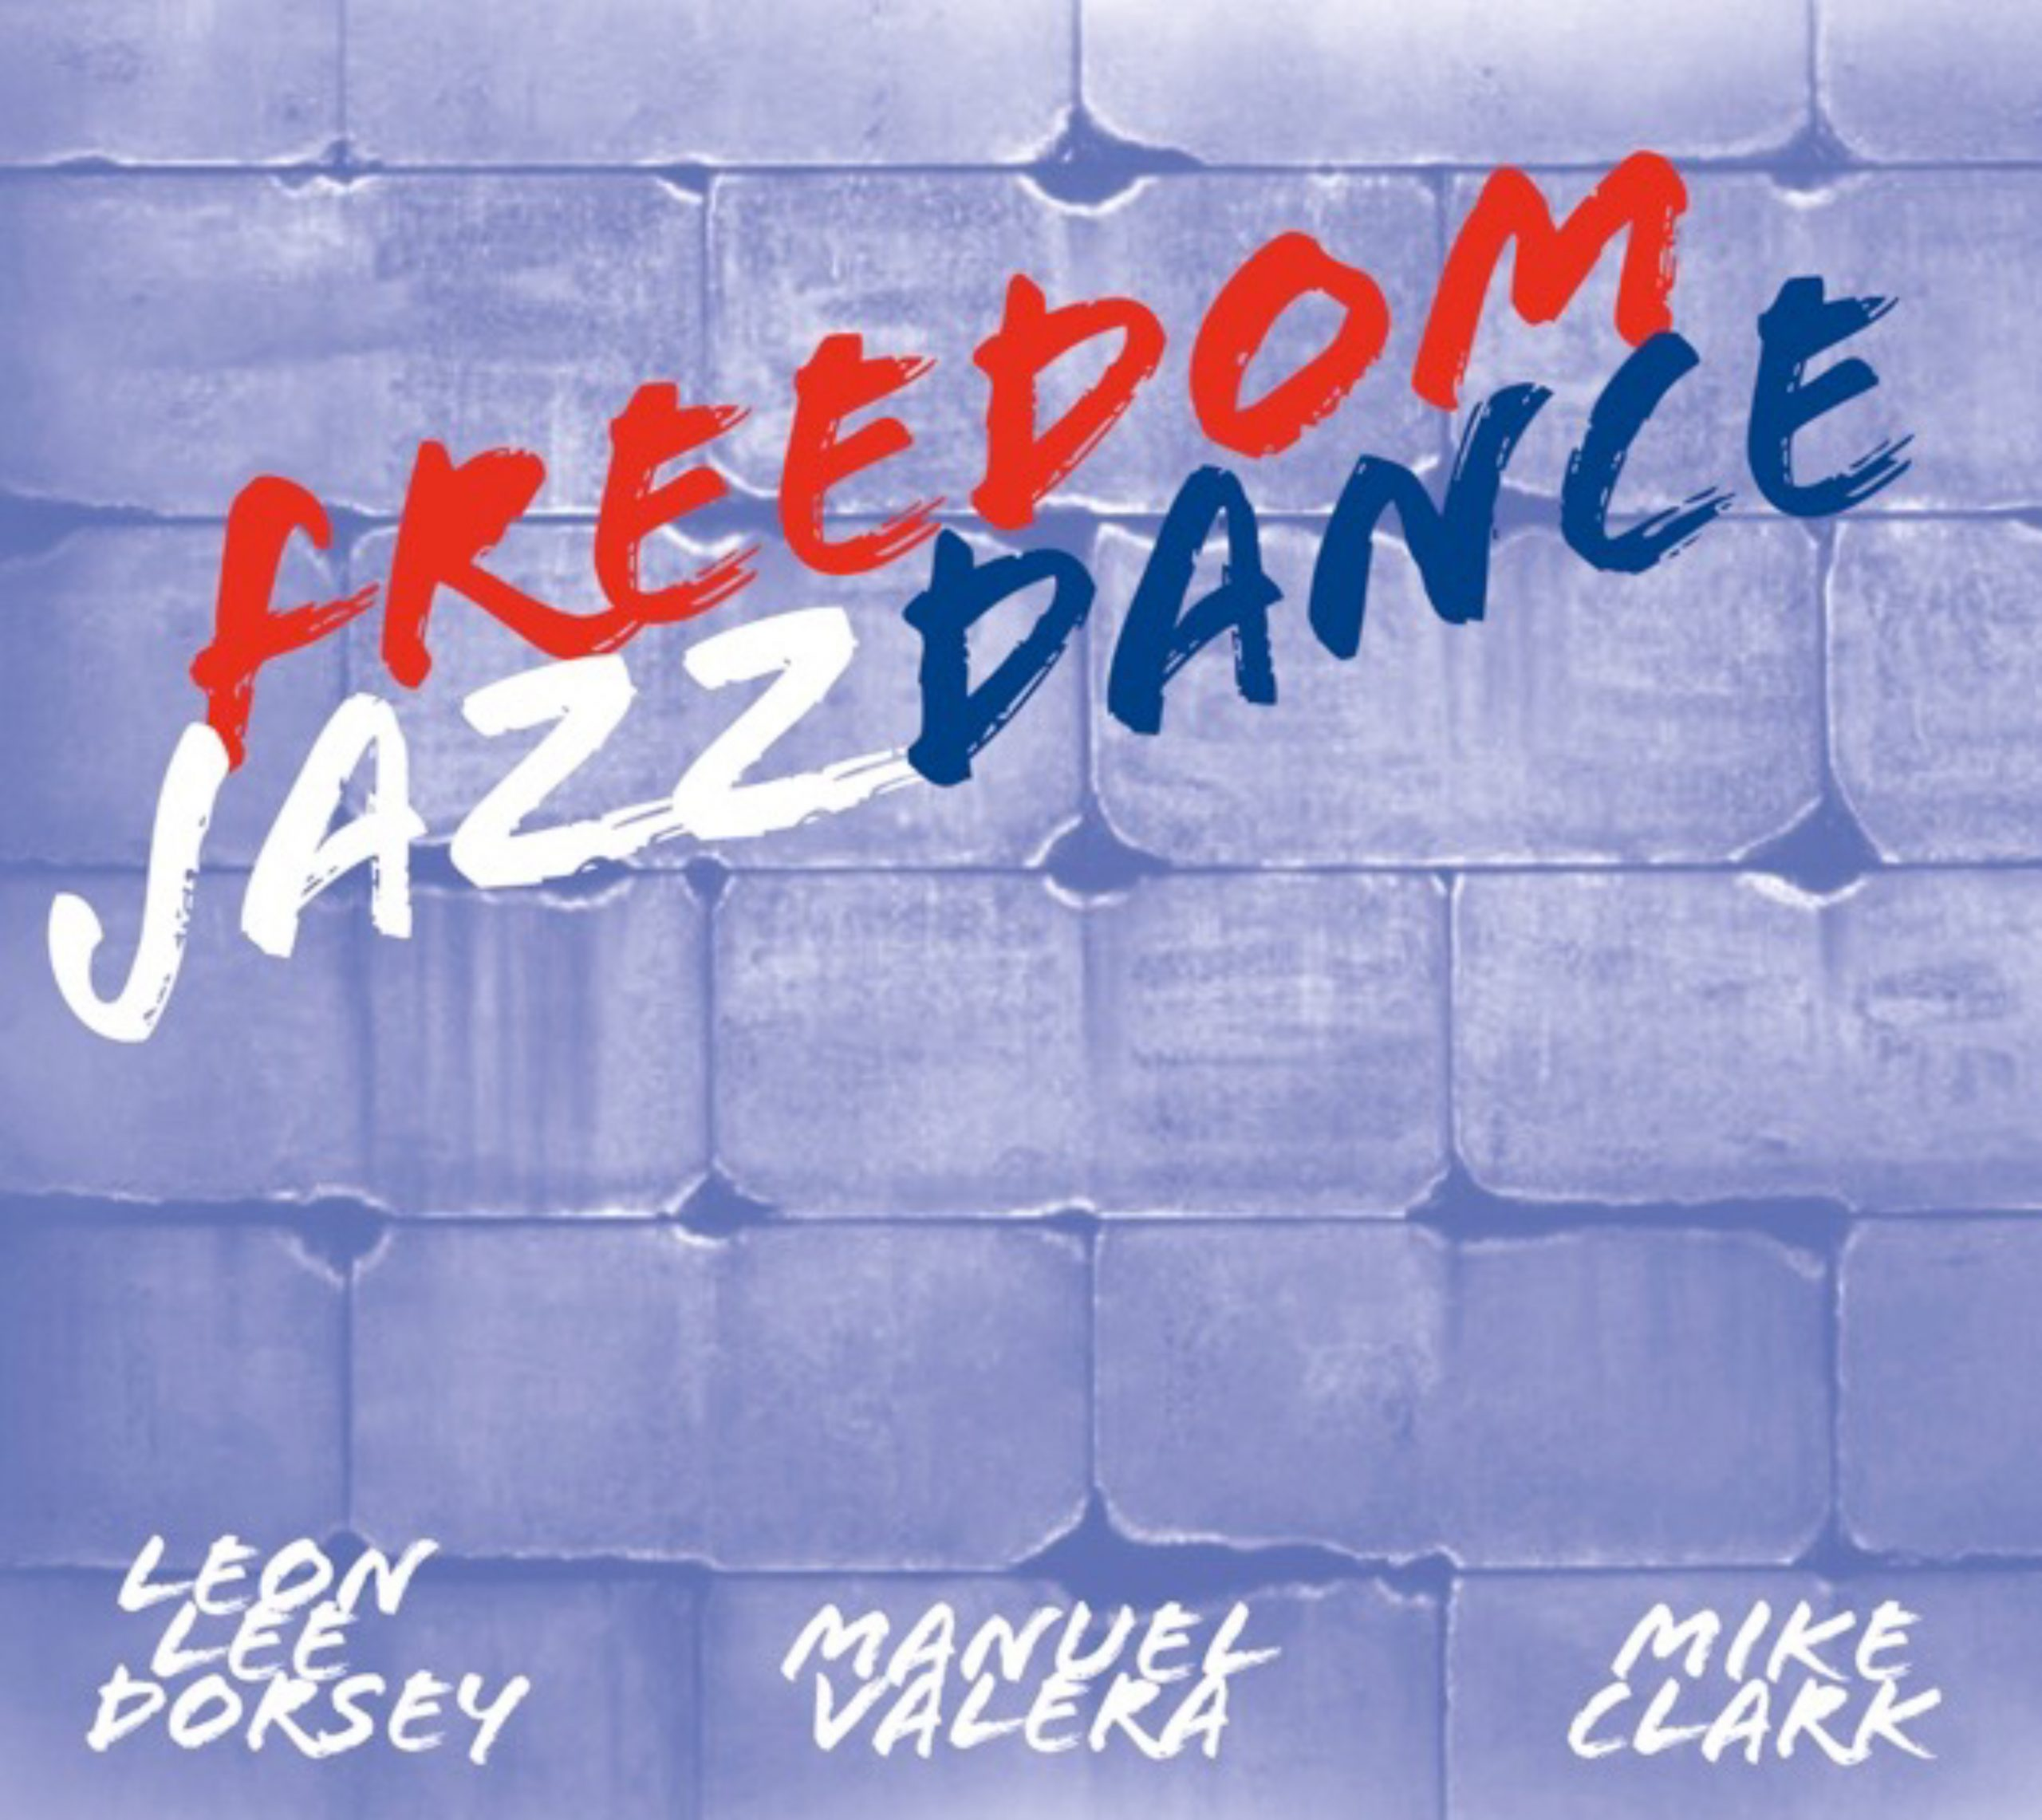 NEW RELEASE: Leon Lee Dorsey's FREEDOM JAZZ DANCE (with Mike Clark, Manuel Valera) is out August 20, 2021 via Jazz Avenue 1